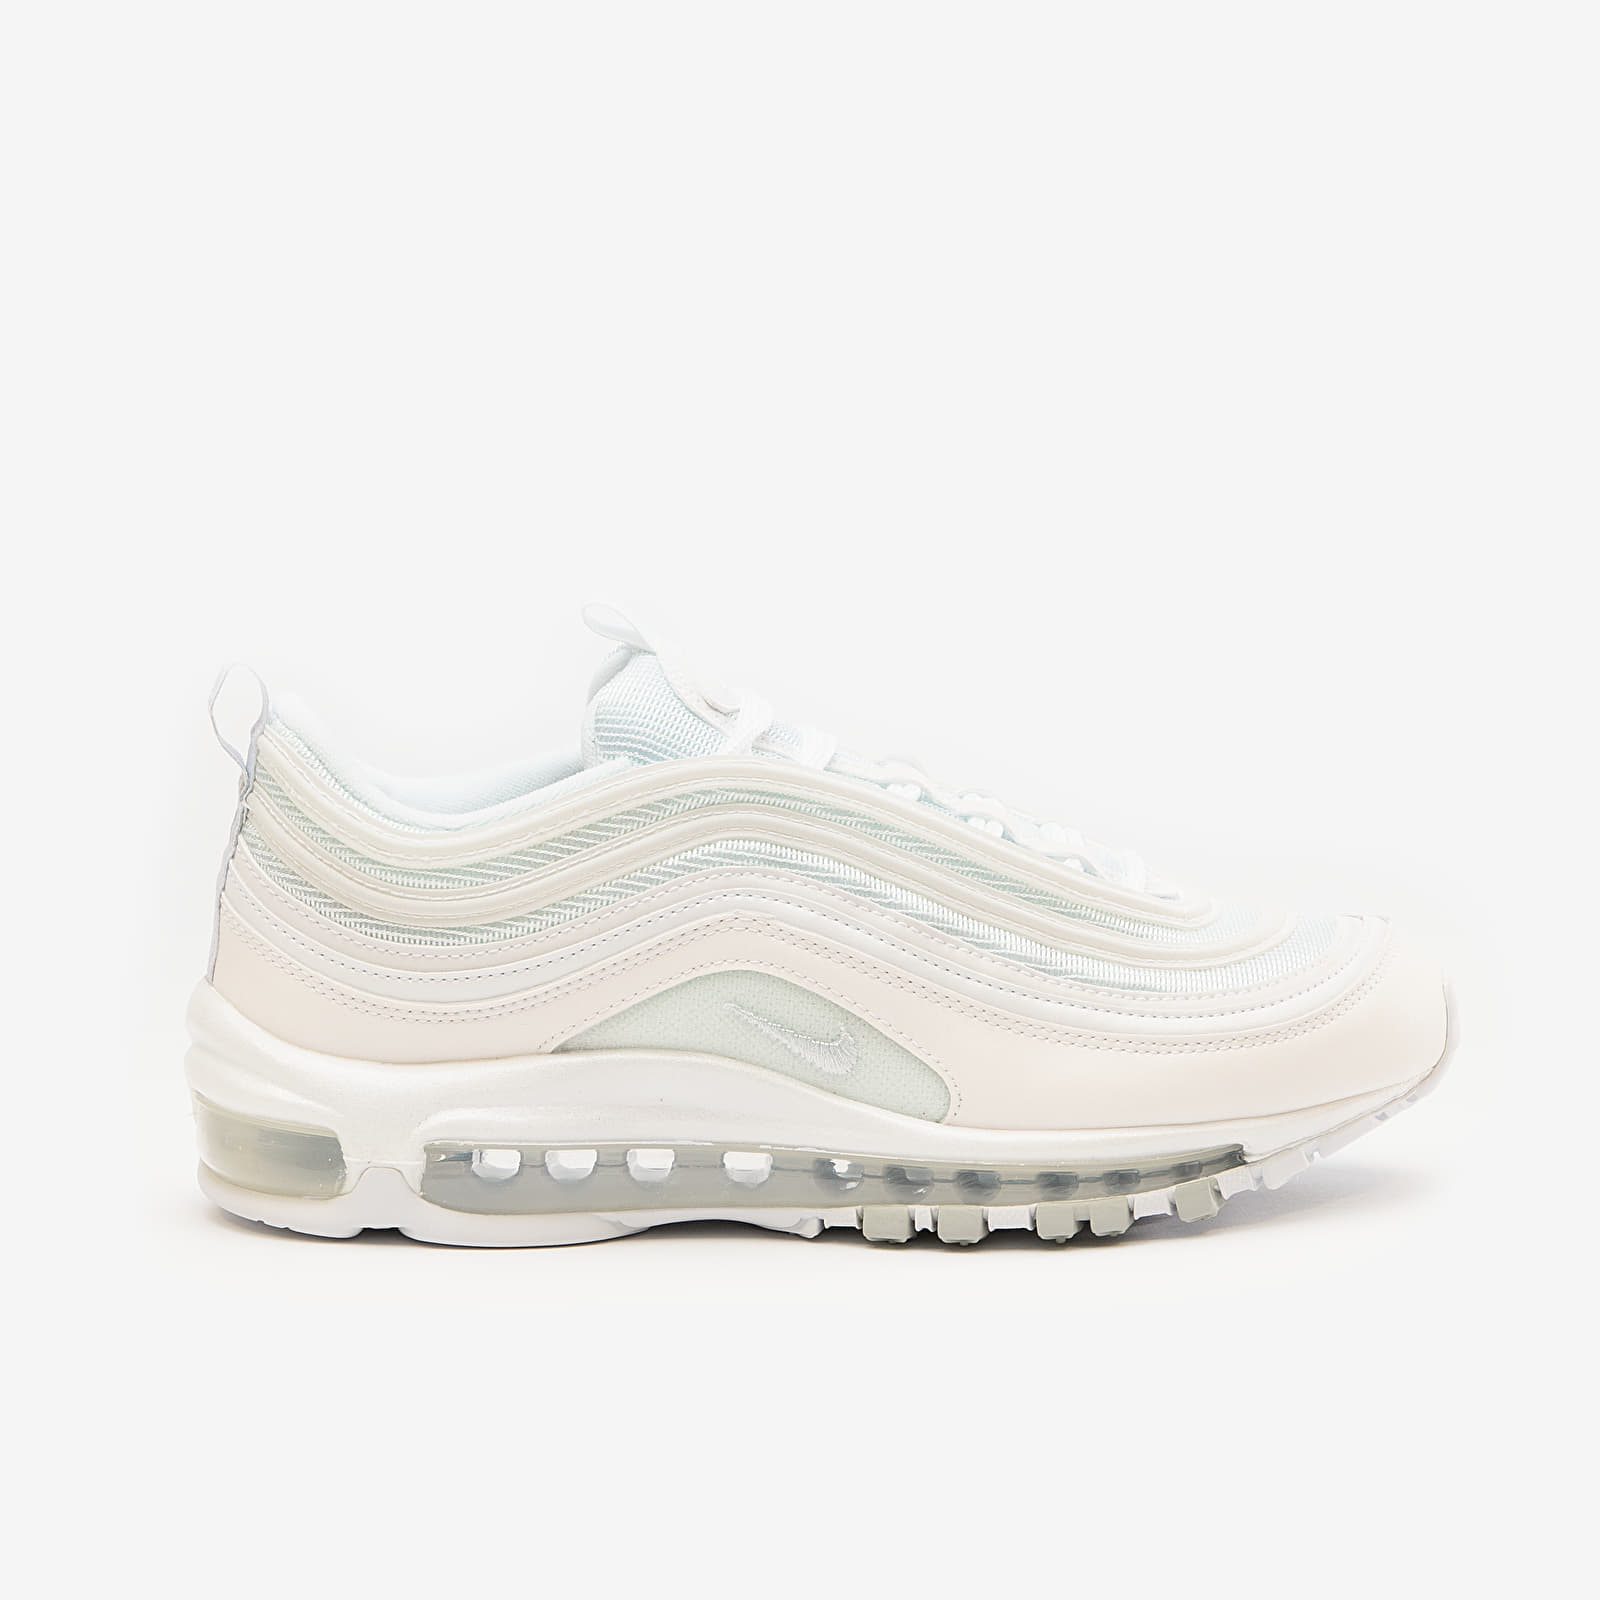 Γυναικεία παπούτσια Nike W Air Max 97 White/ White-Pure Platinum